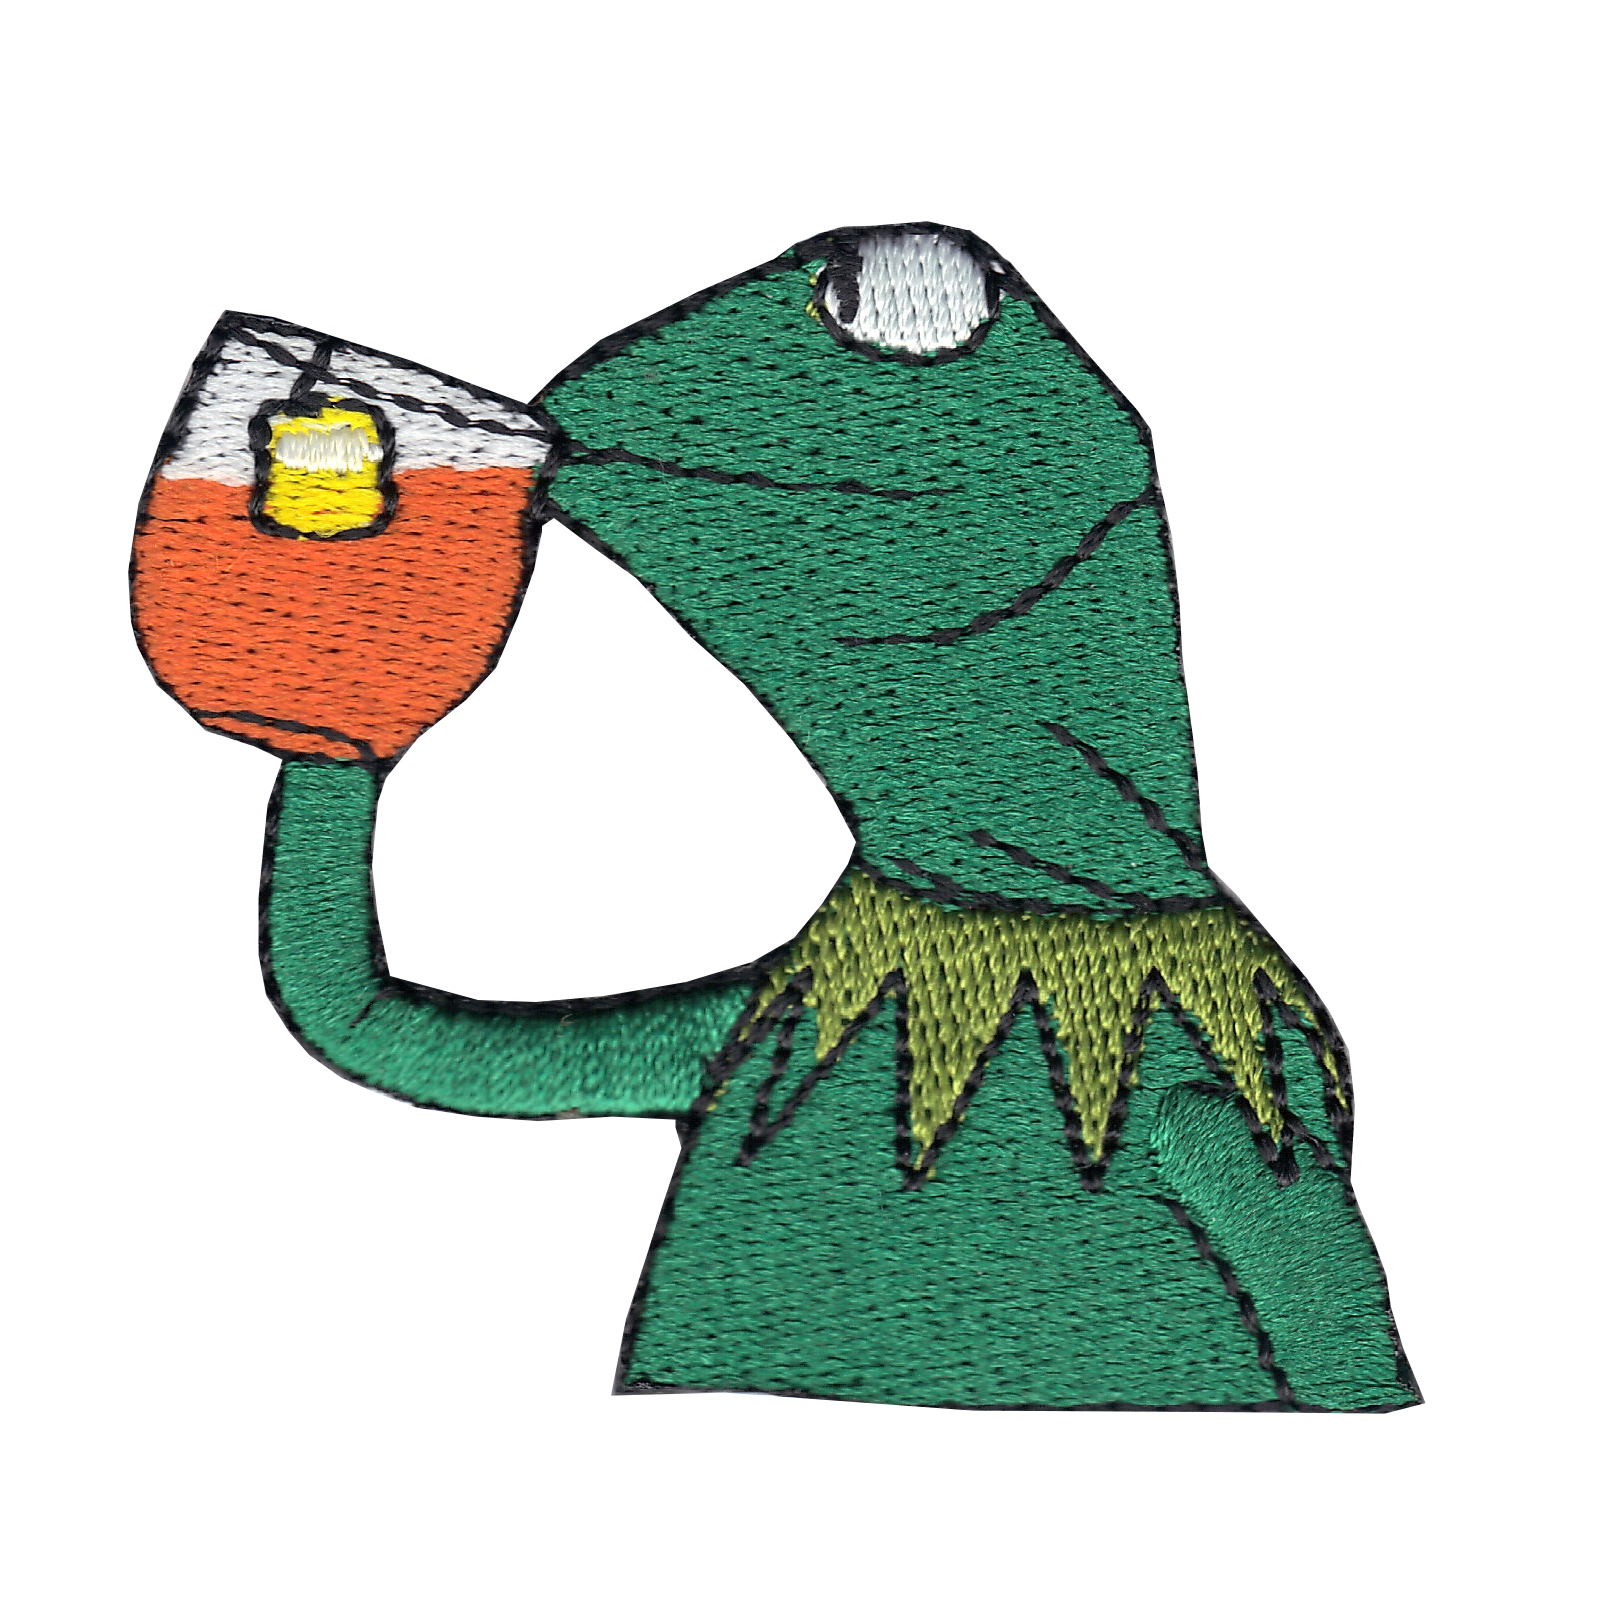 Frog Sipping Tea Iron On Applique Patch